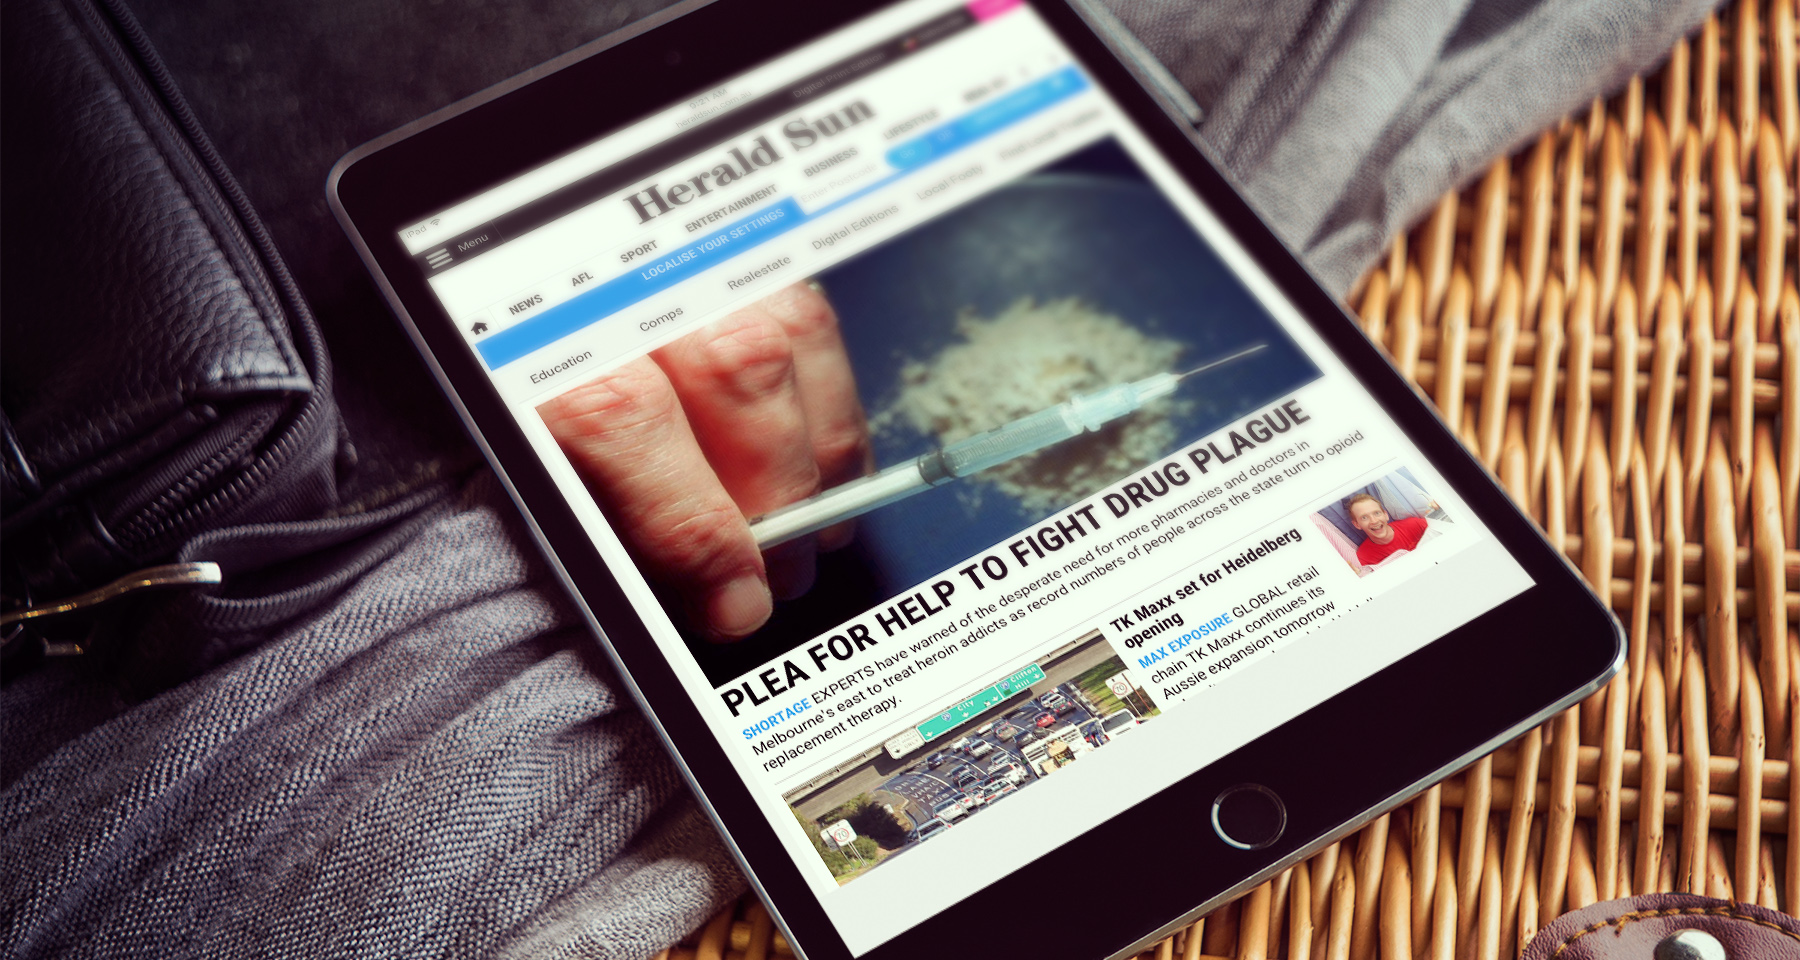 Herald Sun shares 3 lessons learned during Web site relaunch